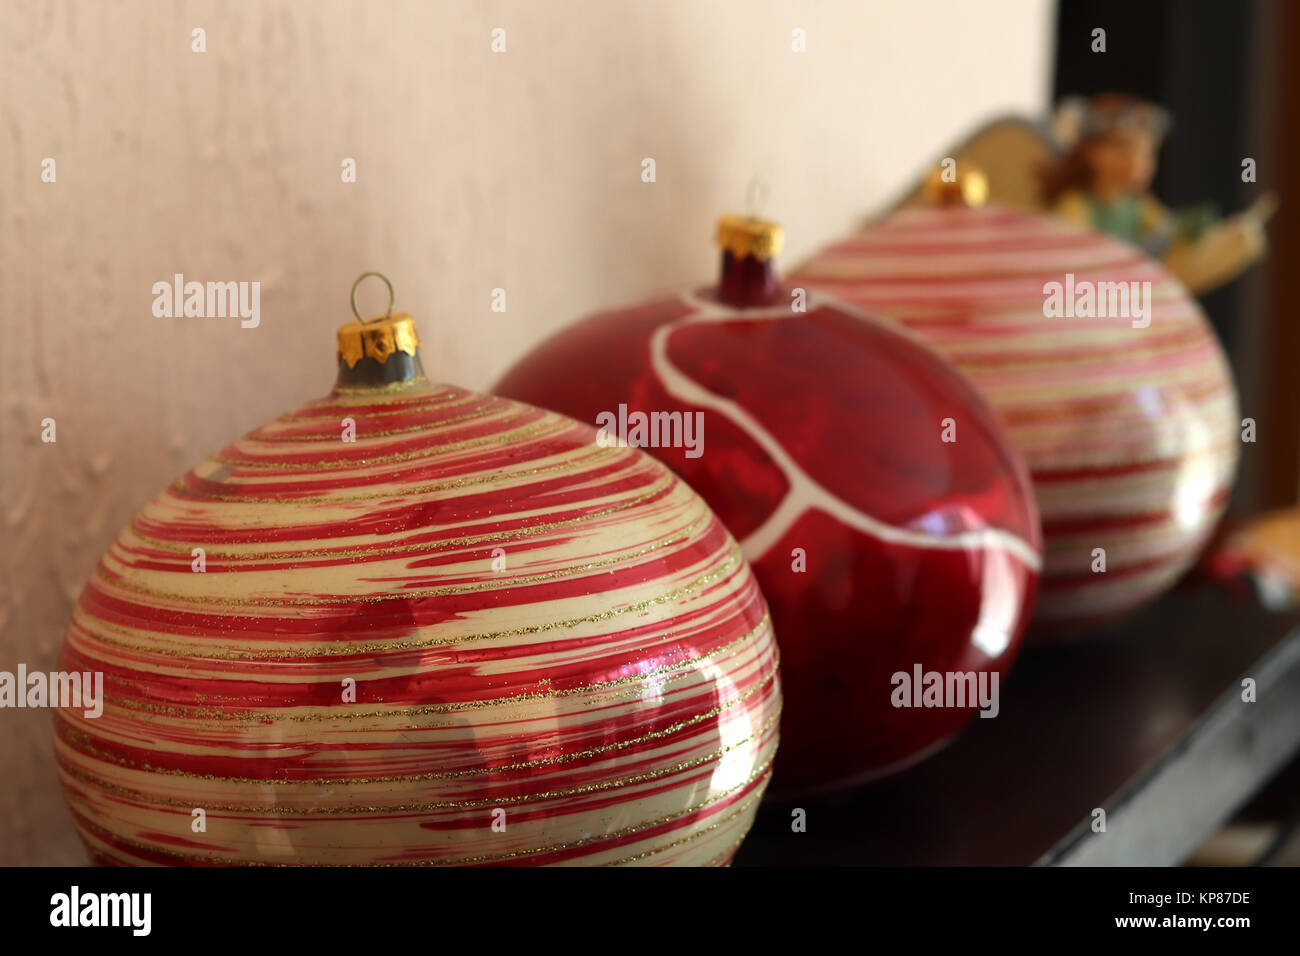 25 decembre stock photos 25 decembre stock images alamy for Decoration lumignon 8 decembre